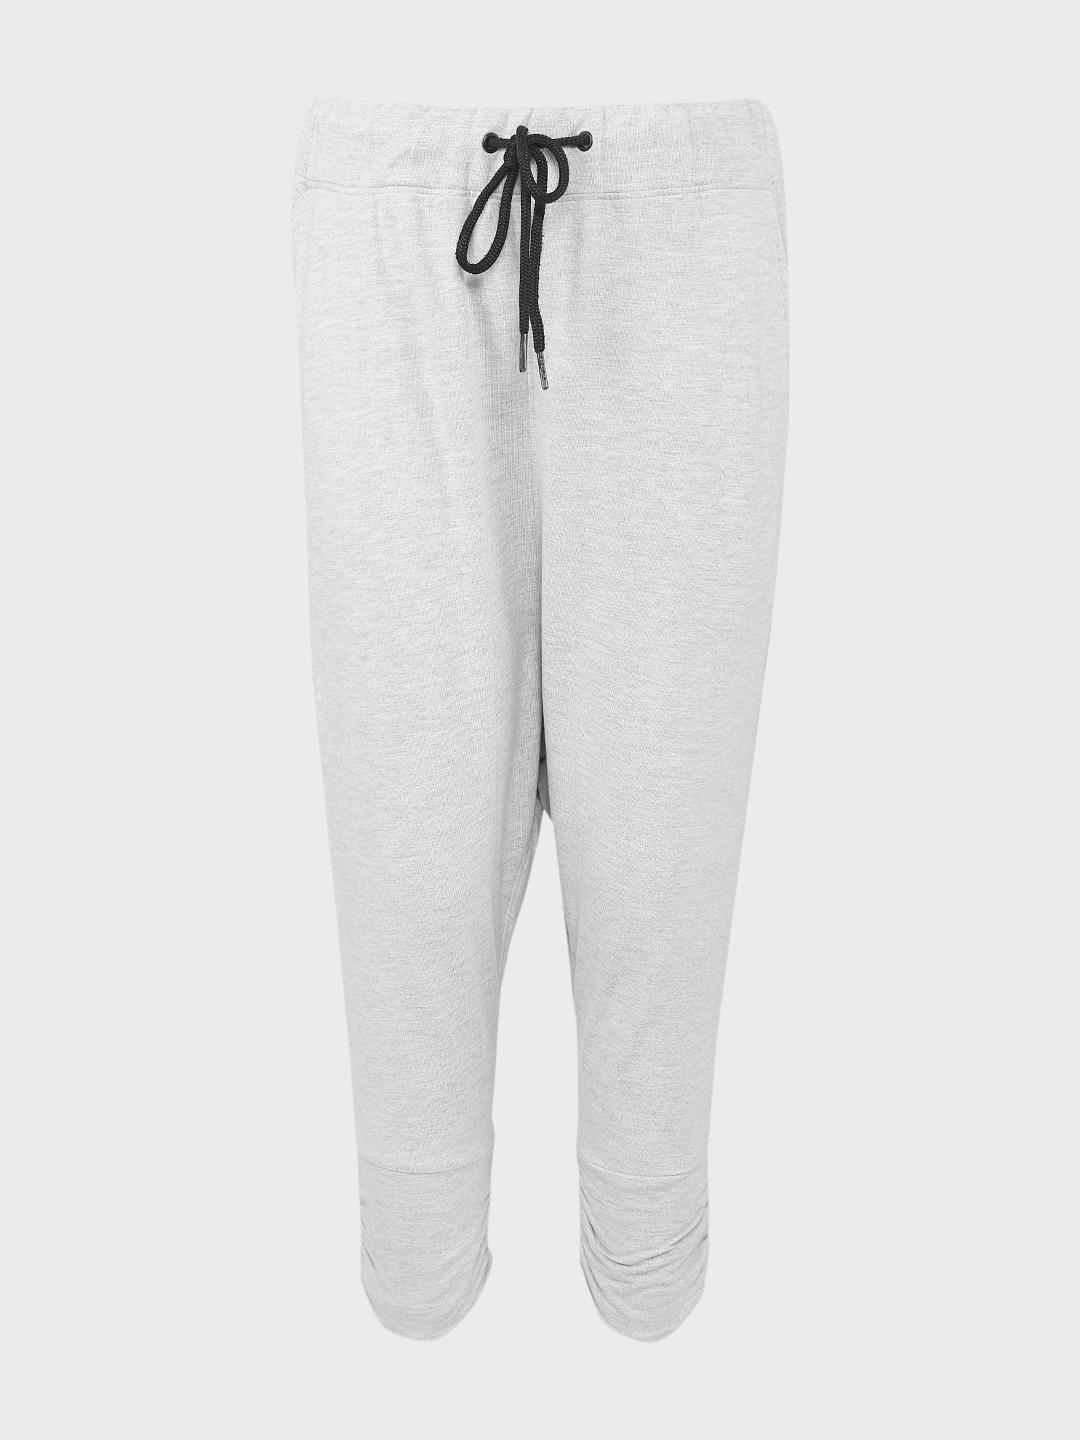 SKULT By Shahid Kapoor Dark Grey Drop Crotch Joggers 1